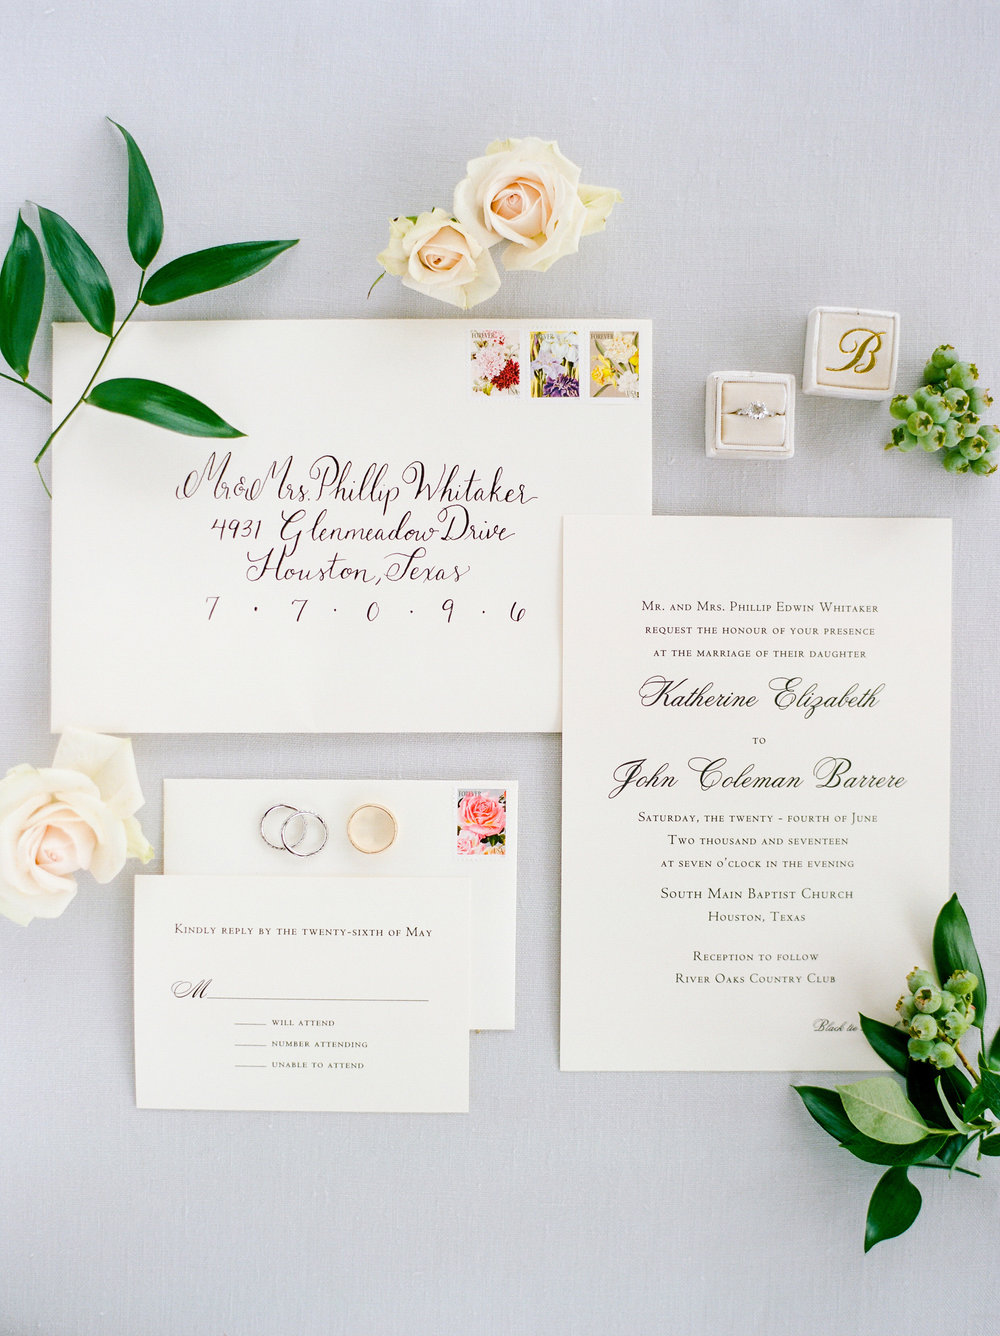 Fine-Art-Film-Houston-Wedding-Photographer-Best-Top-Luxury-Texas-Austin-Dallas-Destination-Dana-Fernandez-Photography-River-Oaks-Country-Club-South-Main-Baptist-Ceremony-Reception-Wedding-3.jpg